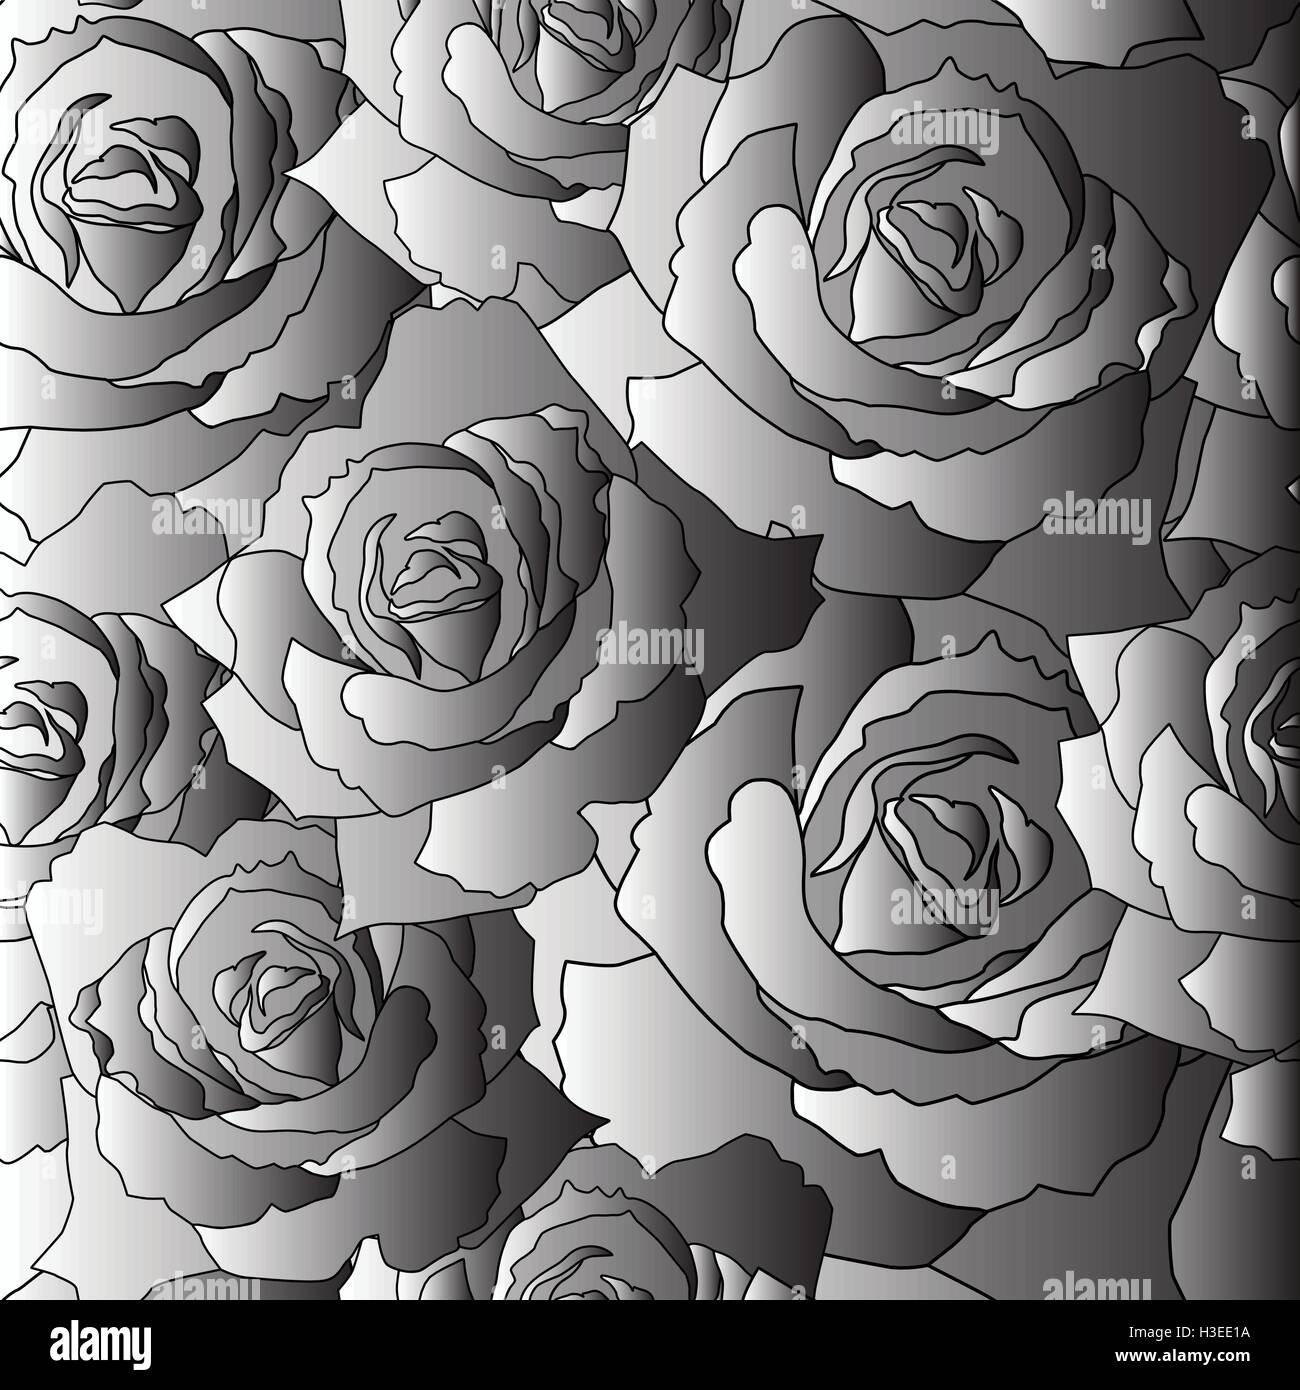 Seamless vector pattern of the stylised roses - Stock Image